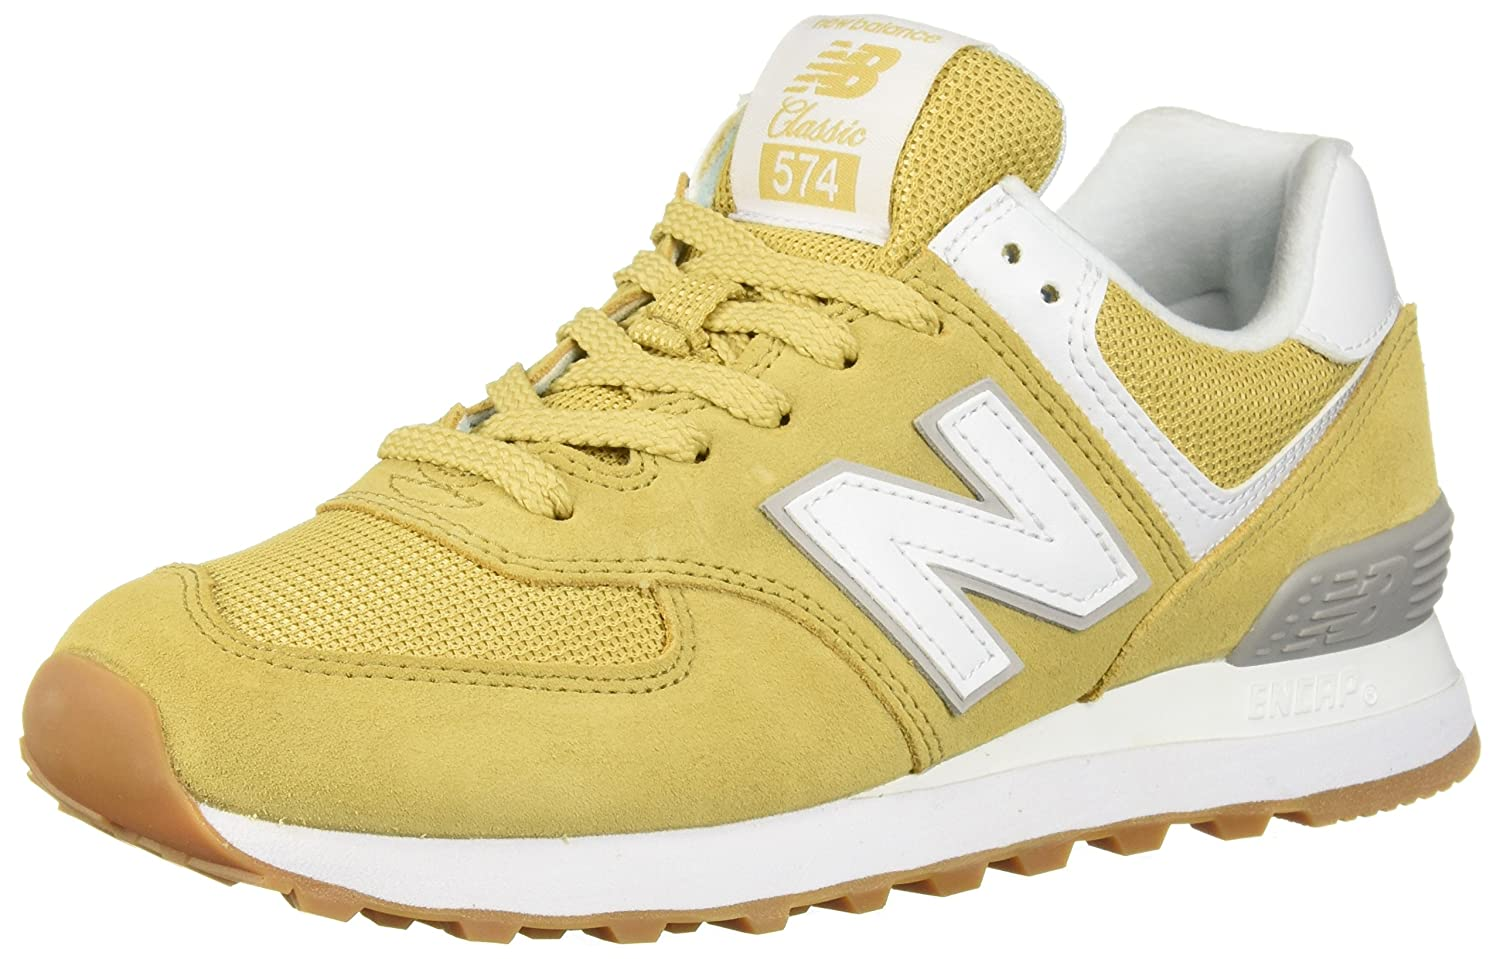 New Balance Wl574v2, Zapatillas para Mujer 37 EU|Beige (Toasted Coconut Est)